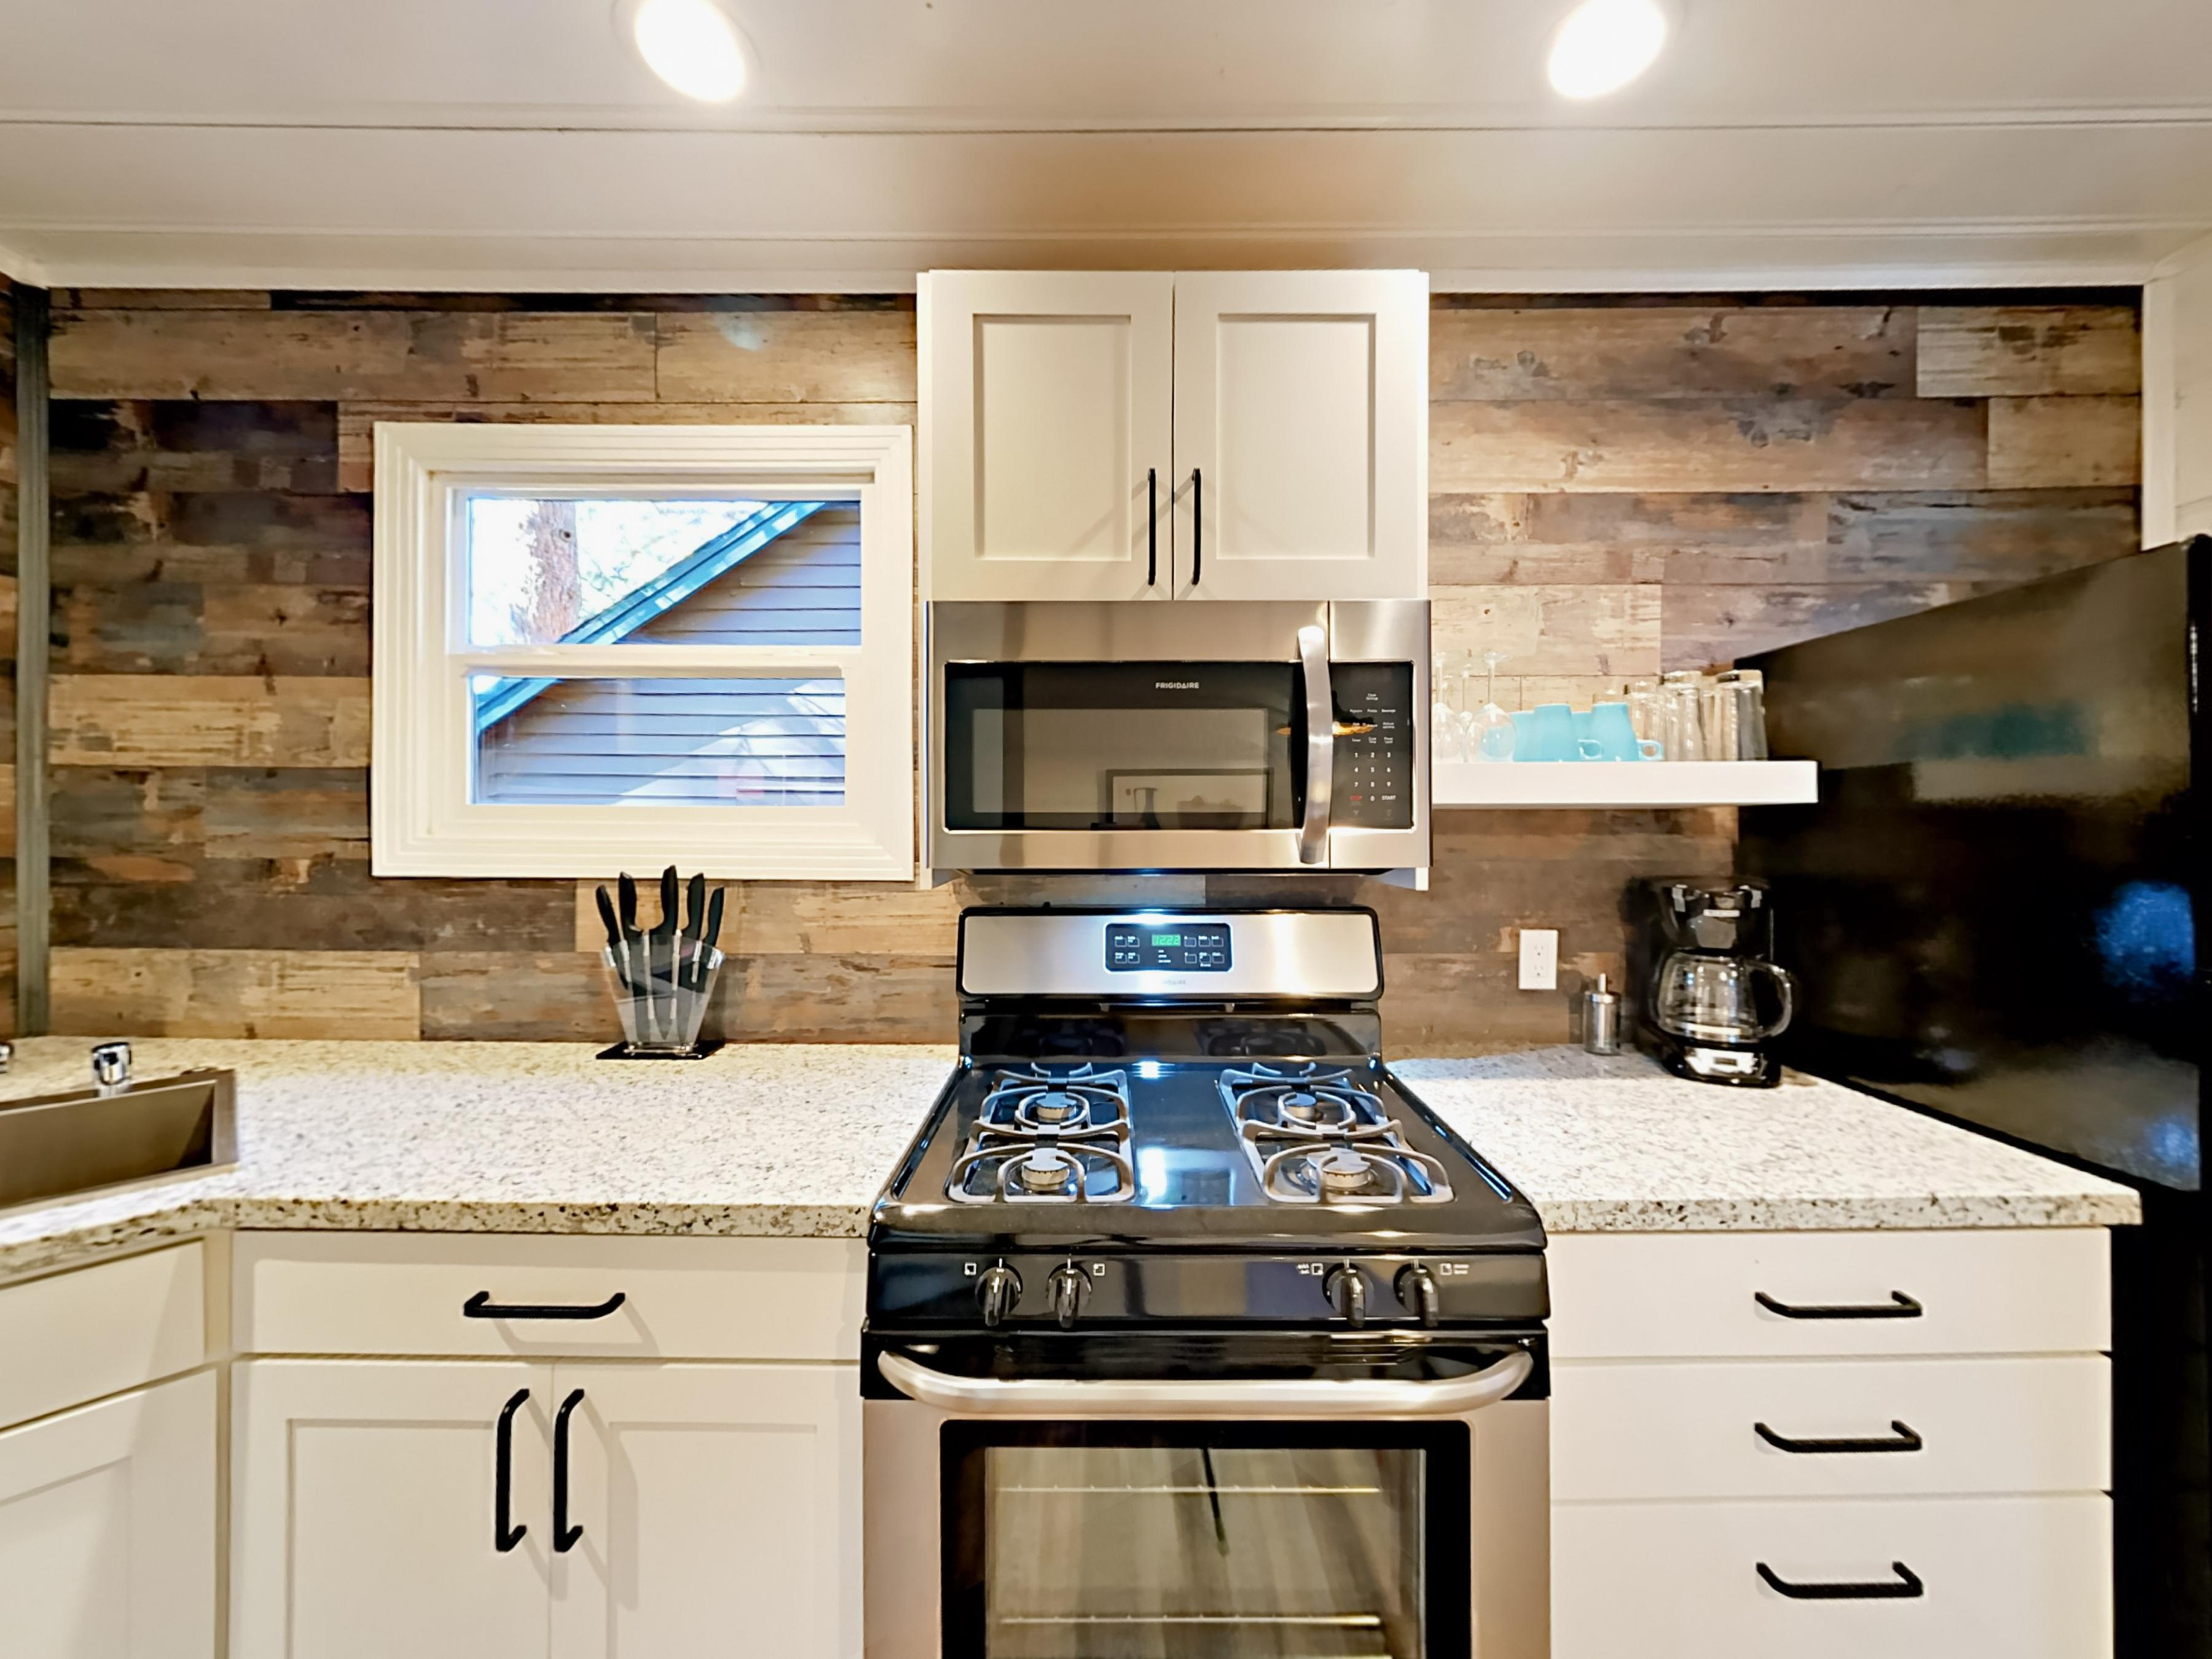 The kitchen is outfitted with a full suite of stainless steel appliances, including a gas range.